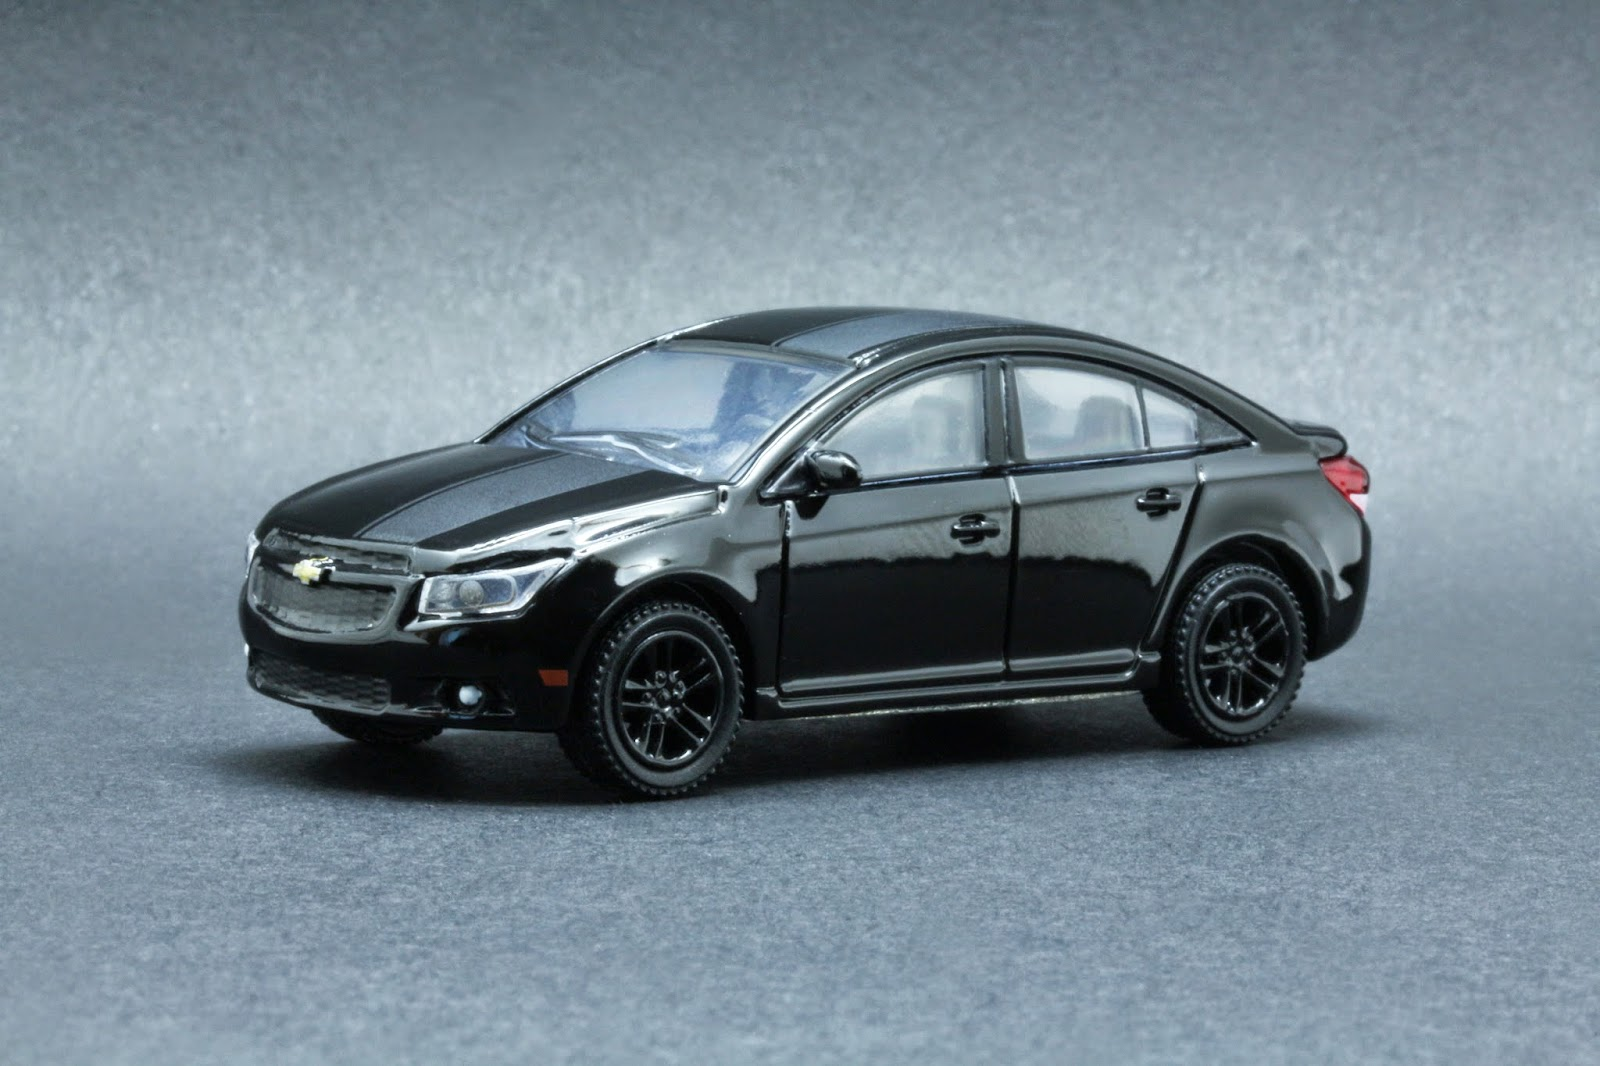 64 Scale Diecast from Greenlight Black Bandit Series 9